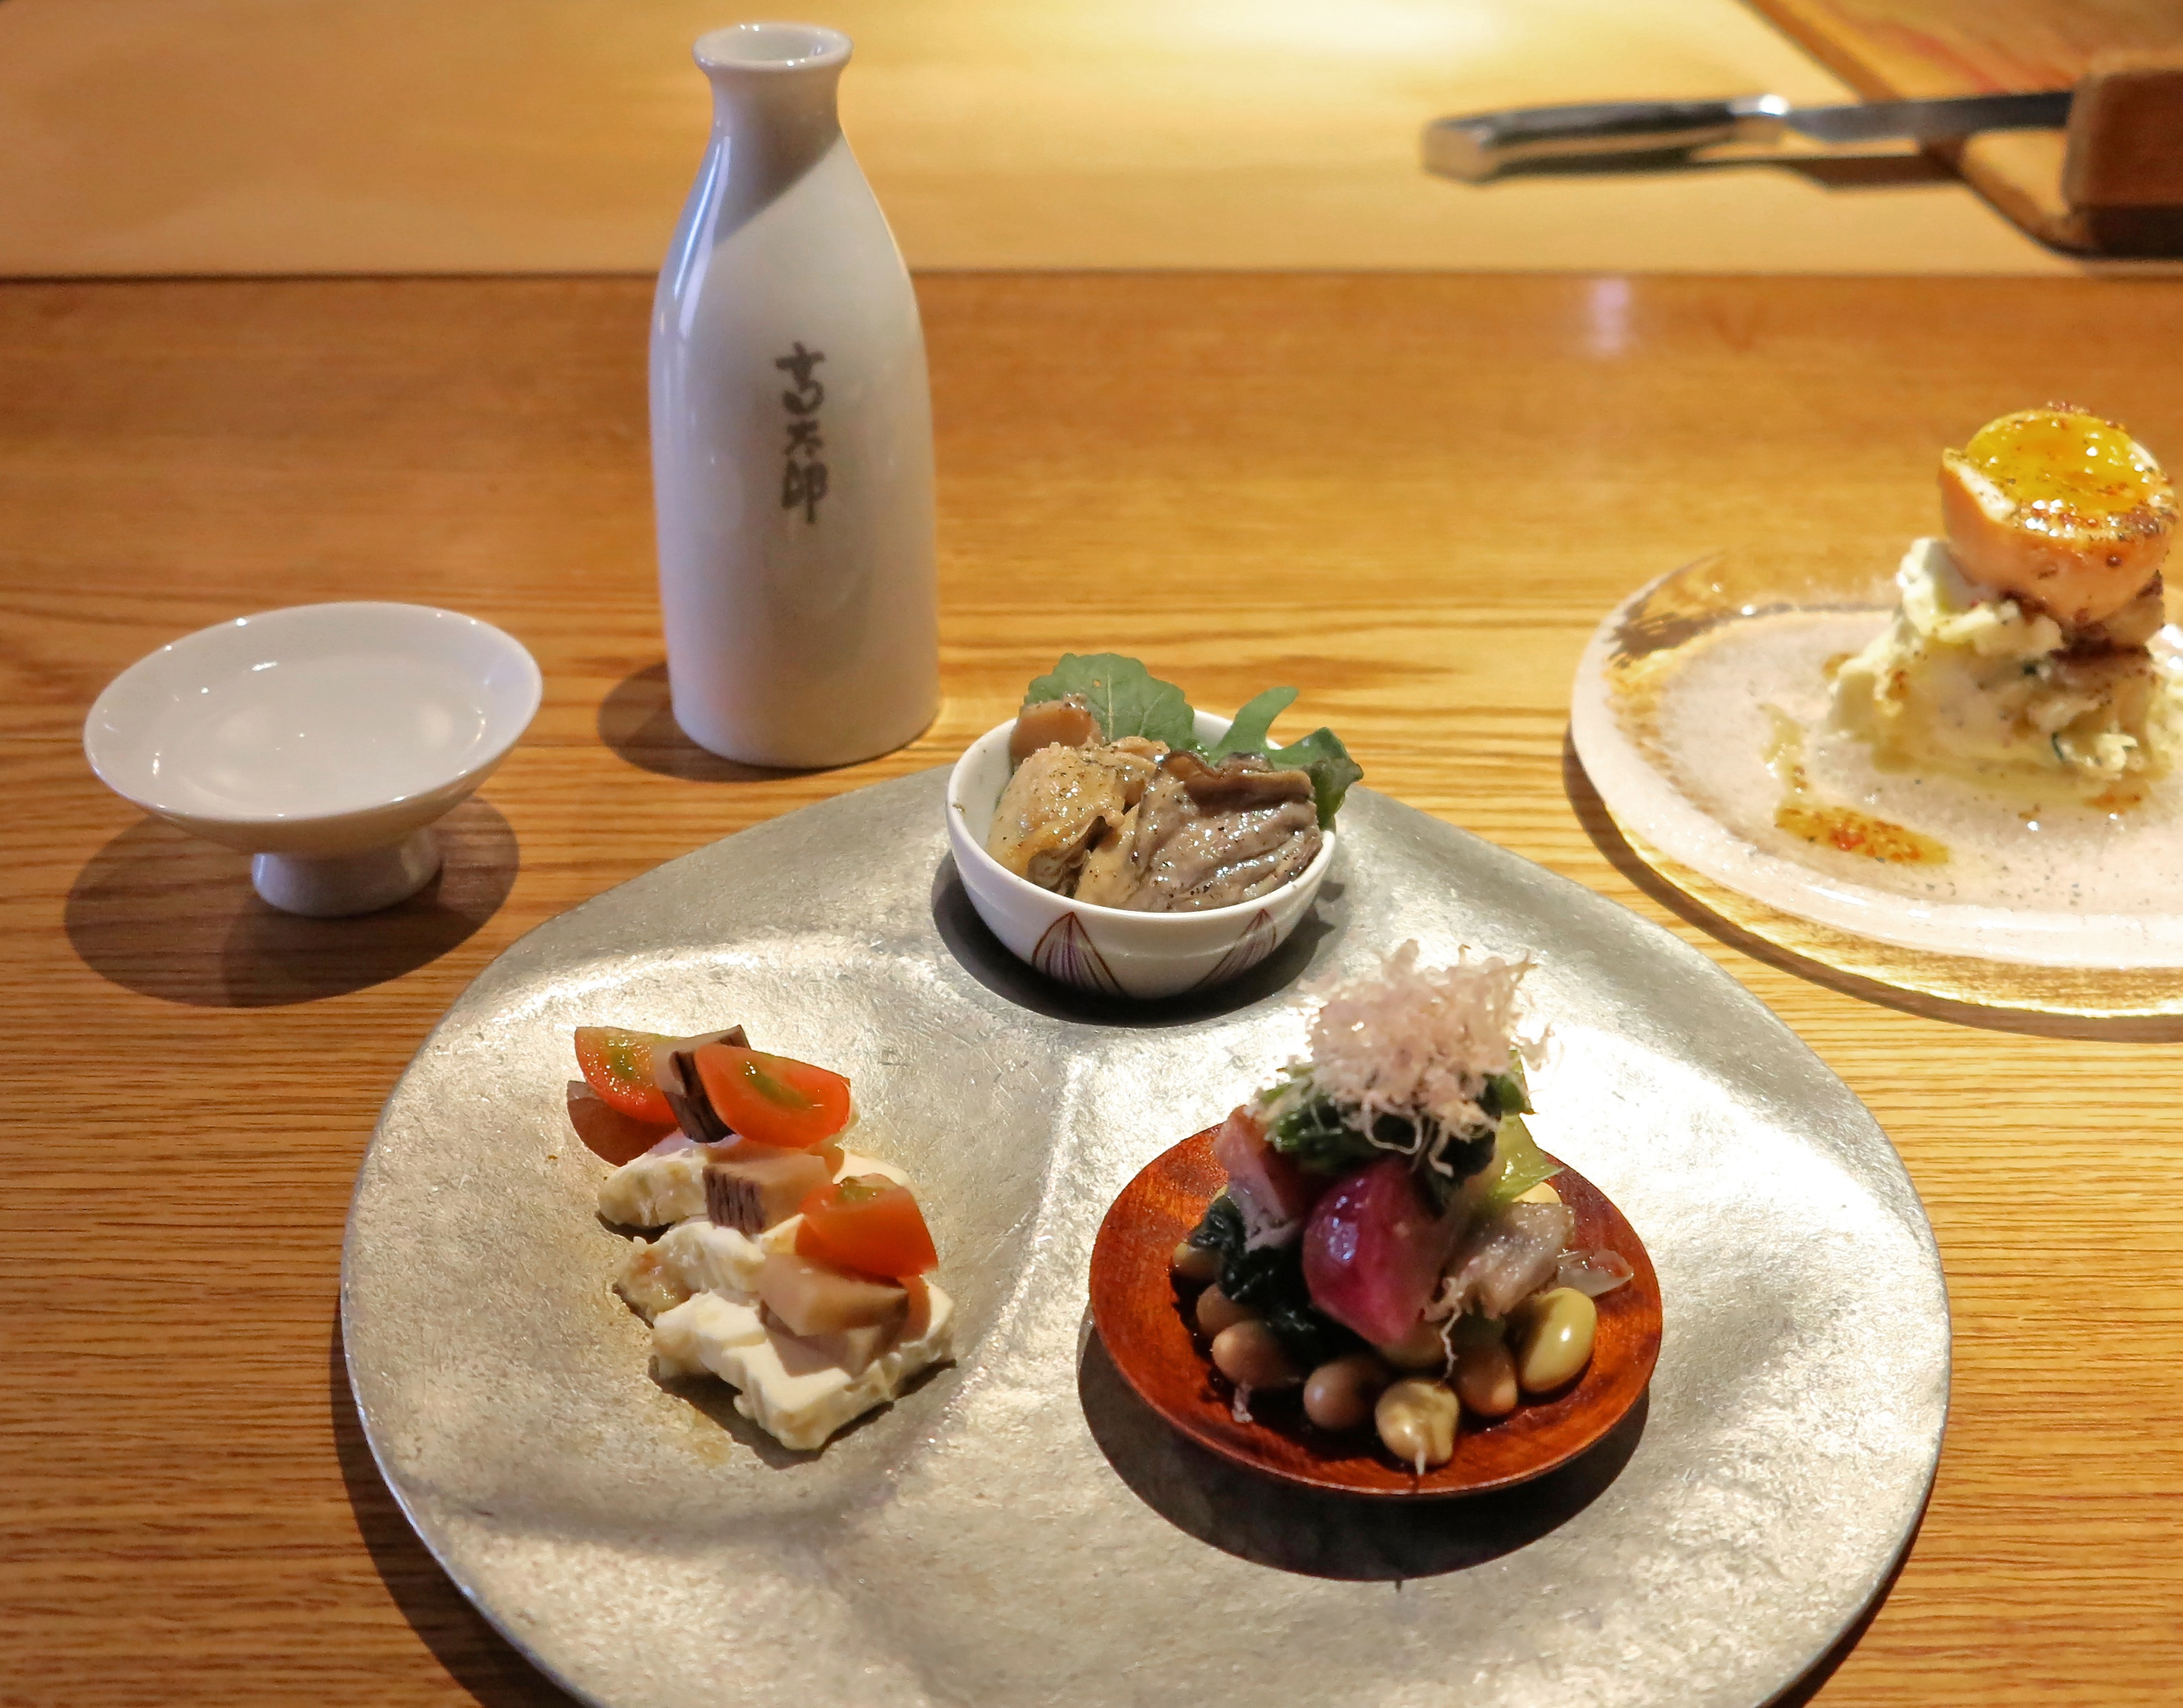 Sake and nibbles: Meals at Kotaro in Shibuya open with an assorted appetizer plate, with an emphasis on organic seasonal vegetables. | ROBBIE SWINNERTON